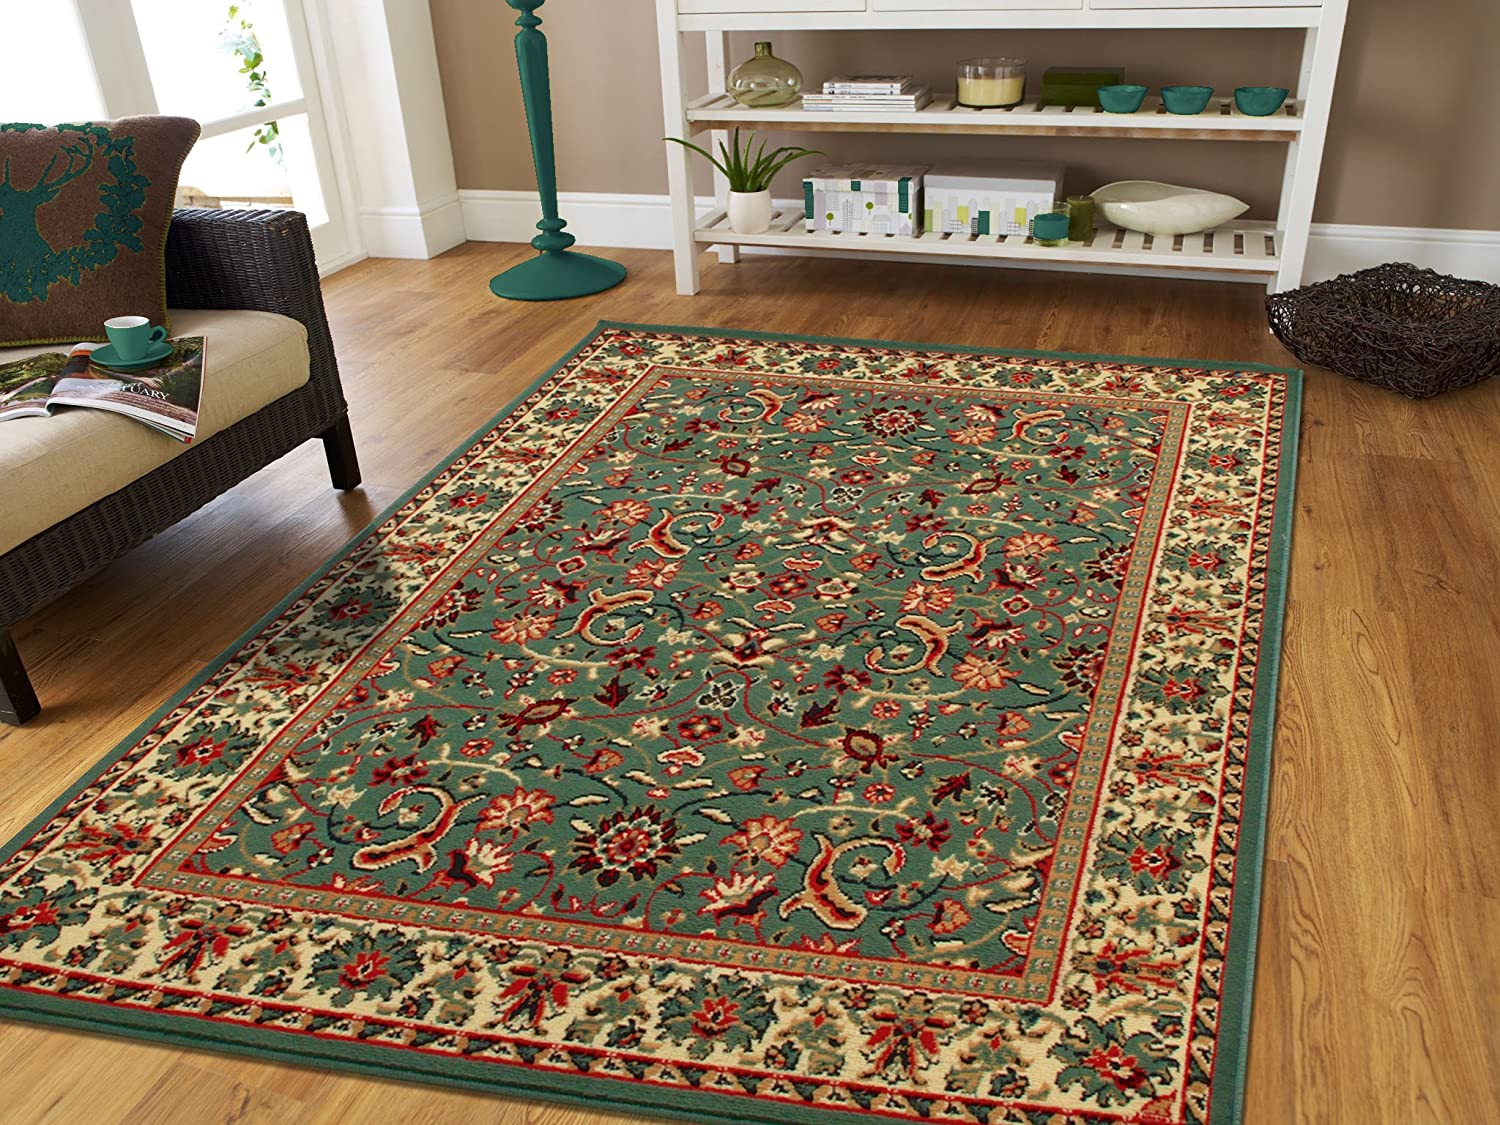 Amazon com persian rugs for living room 5x8 green area rug greens tabriz oriental rugs 5x7 carpet for bedroom rugs kitchen dining